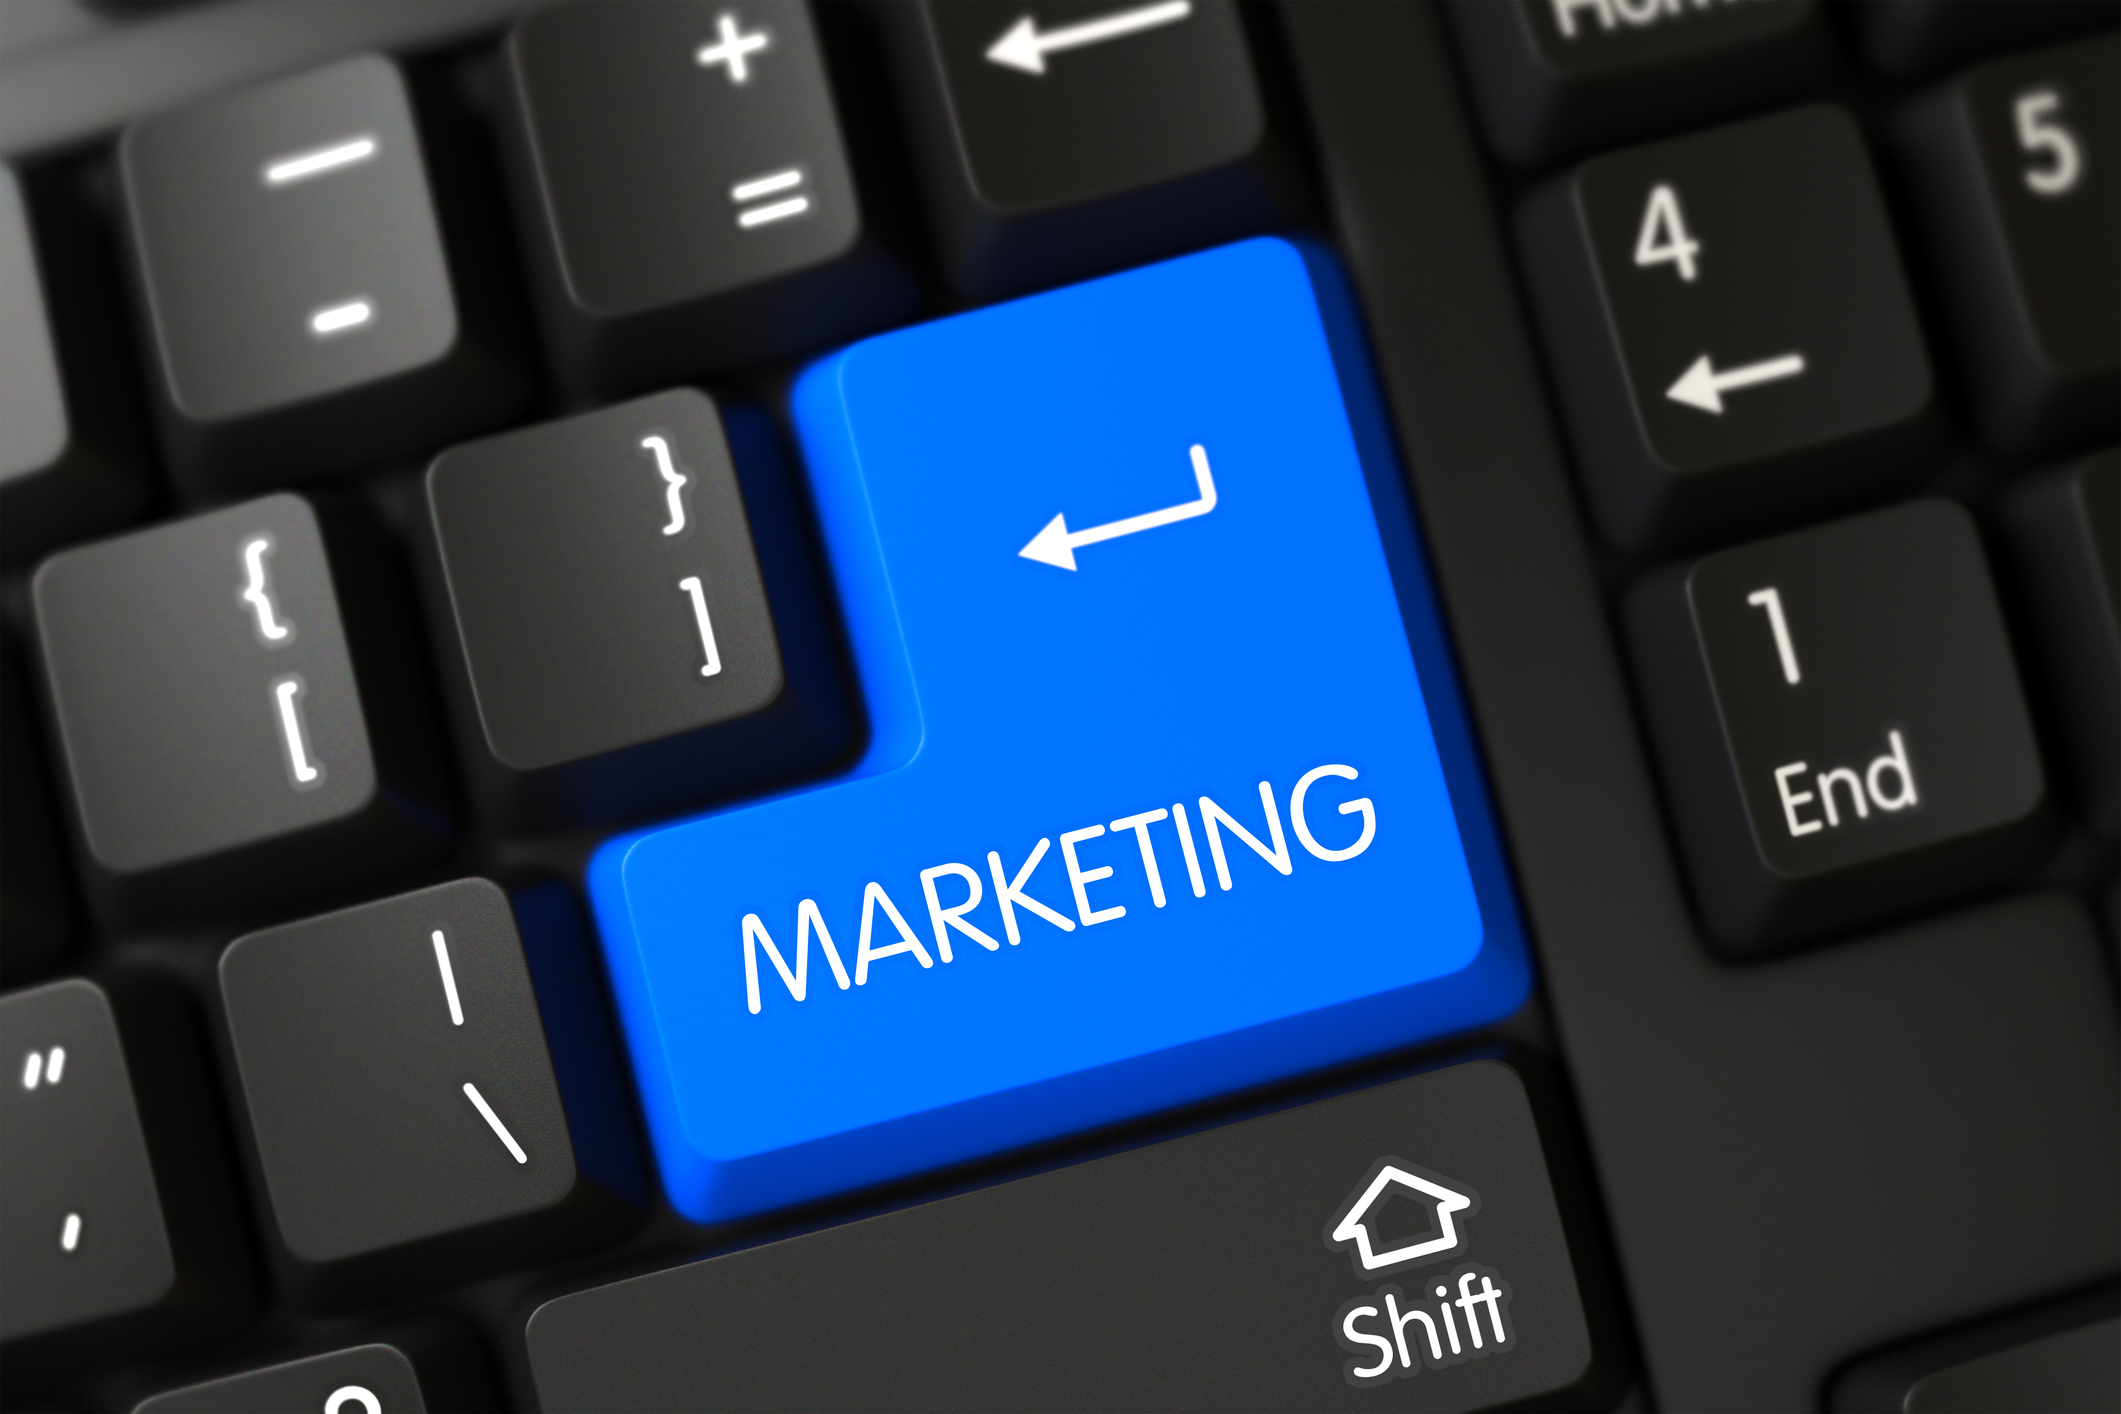 Build a Successful and Cost-Effective Marketing Campaign with These Tips